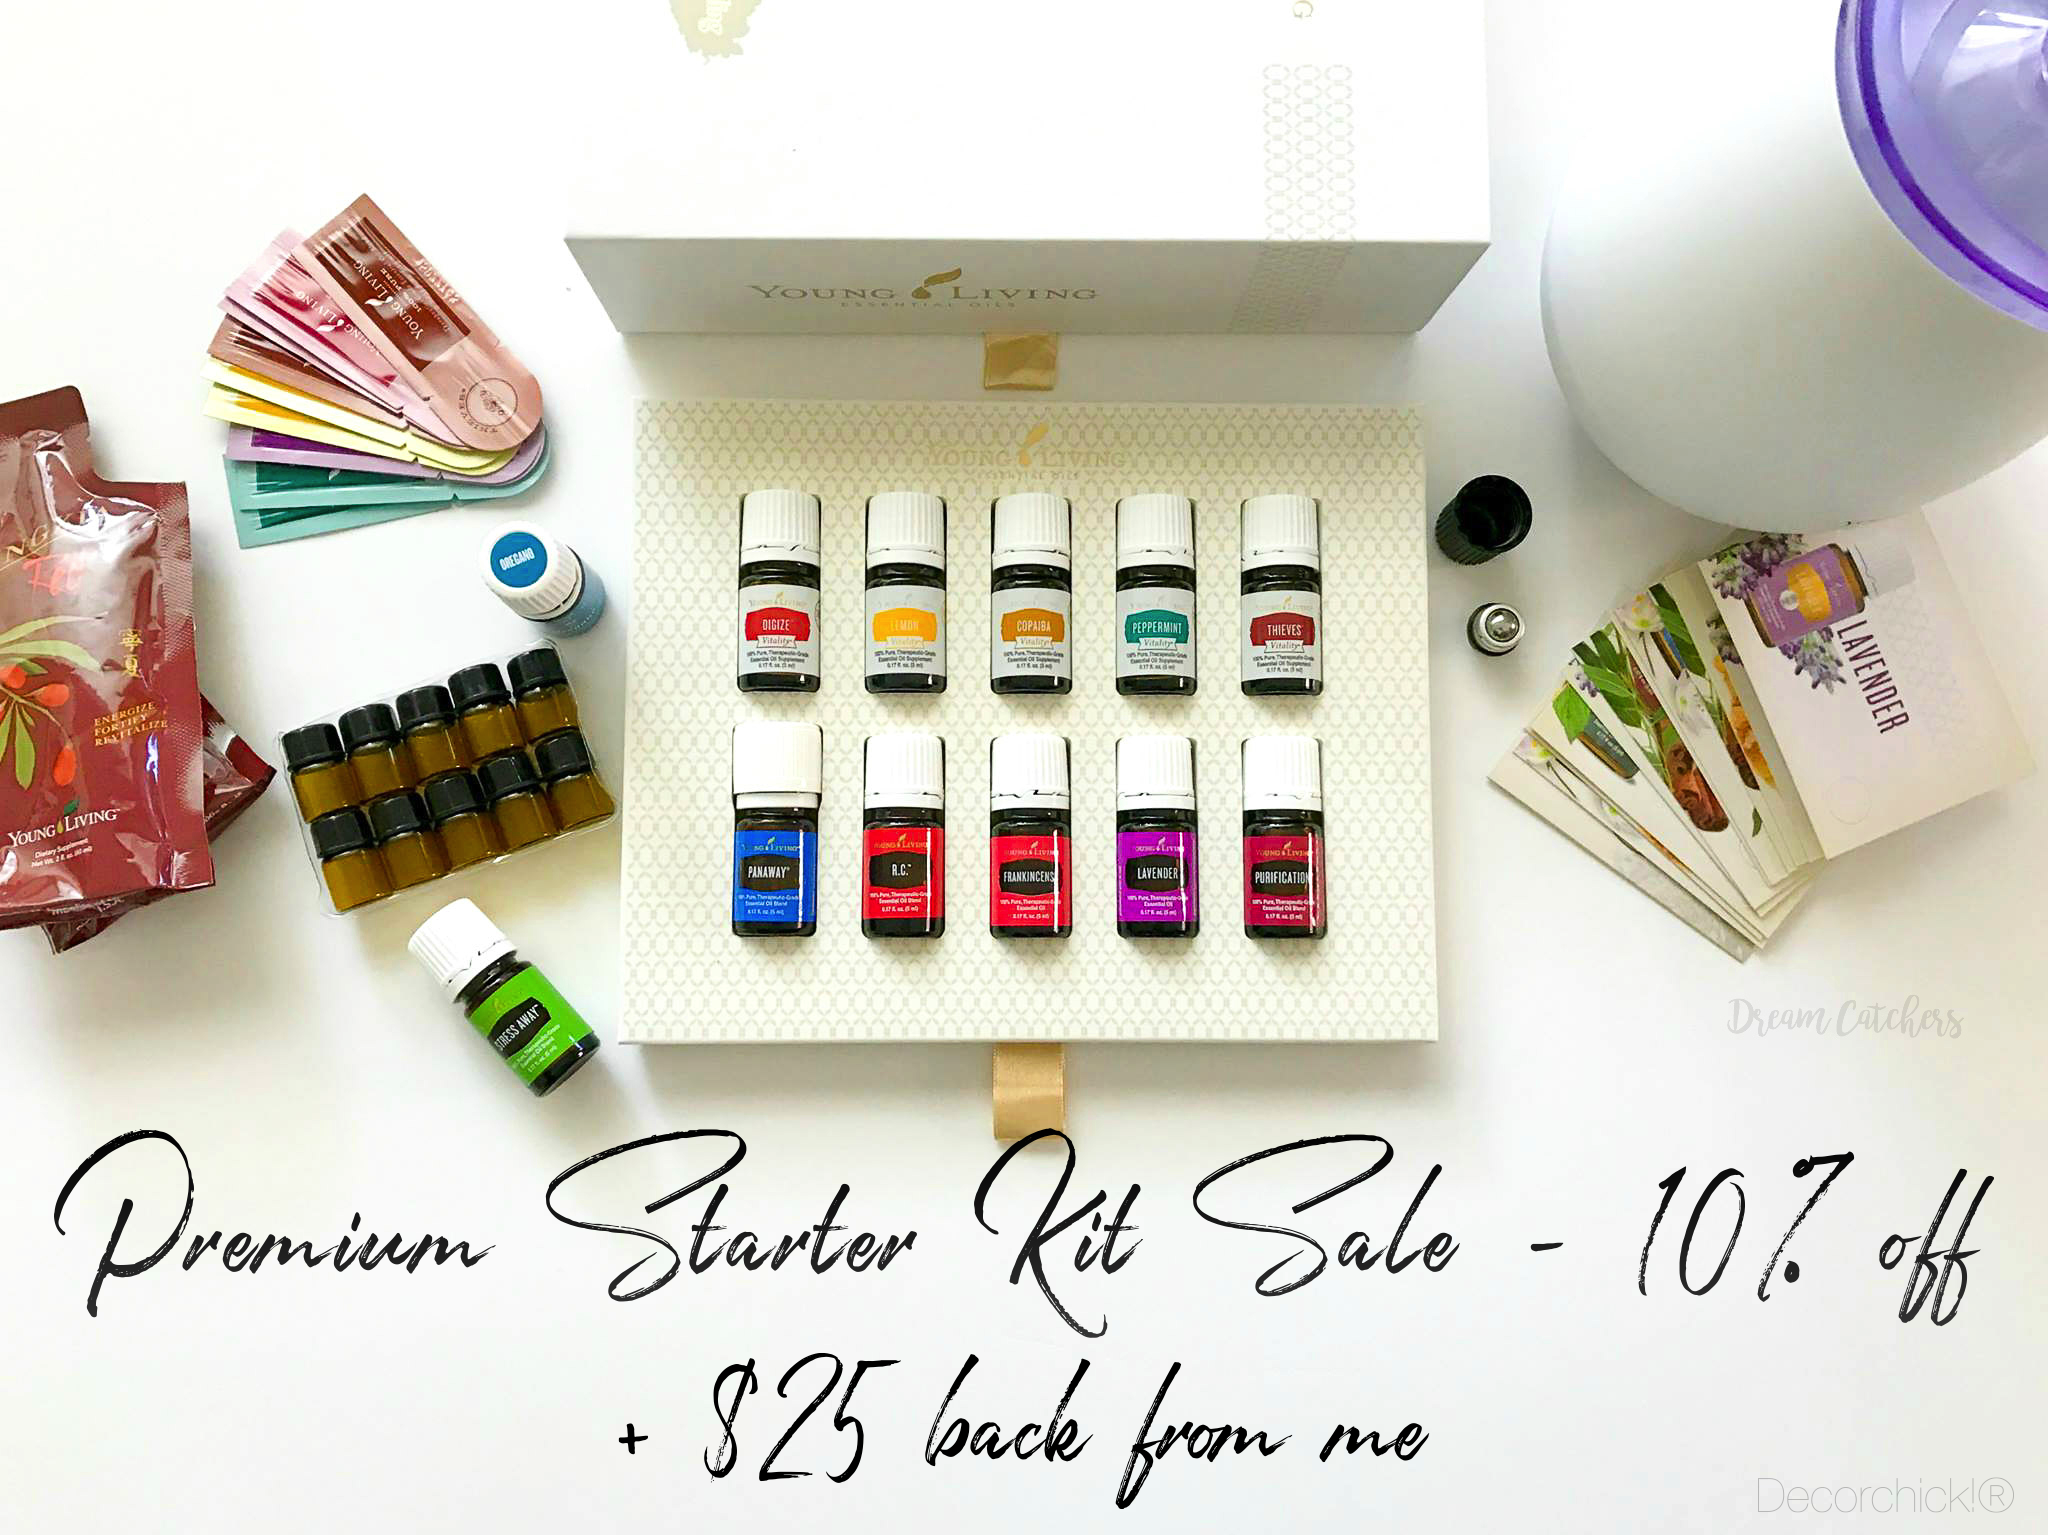 Premium Starter Kit Sale! | Decorchick!®